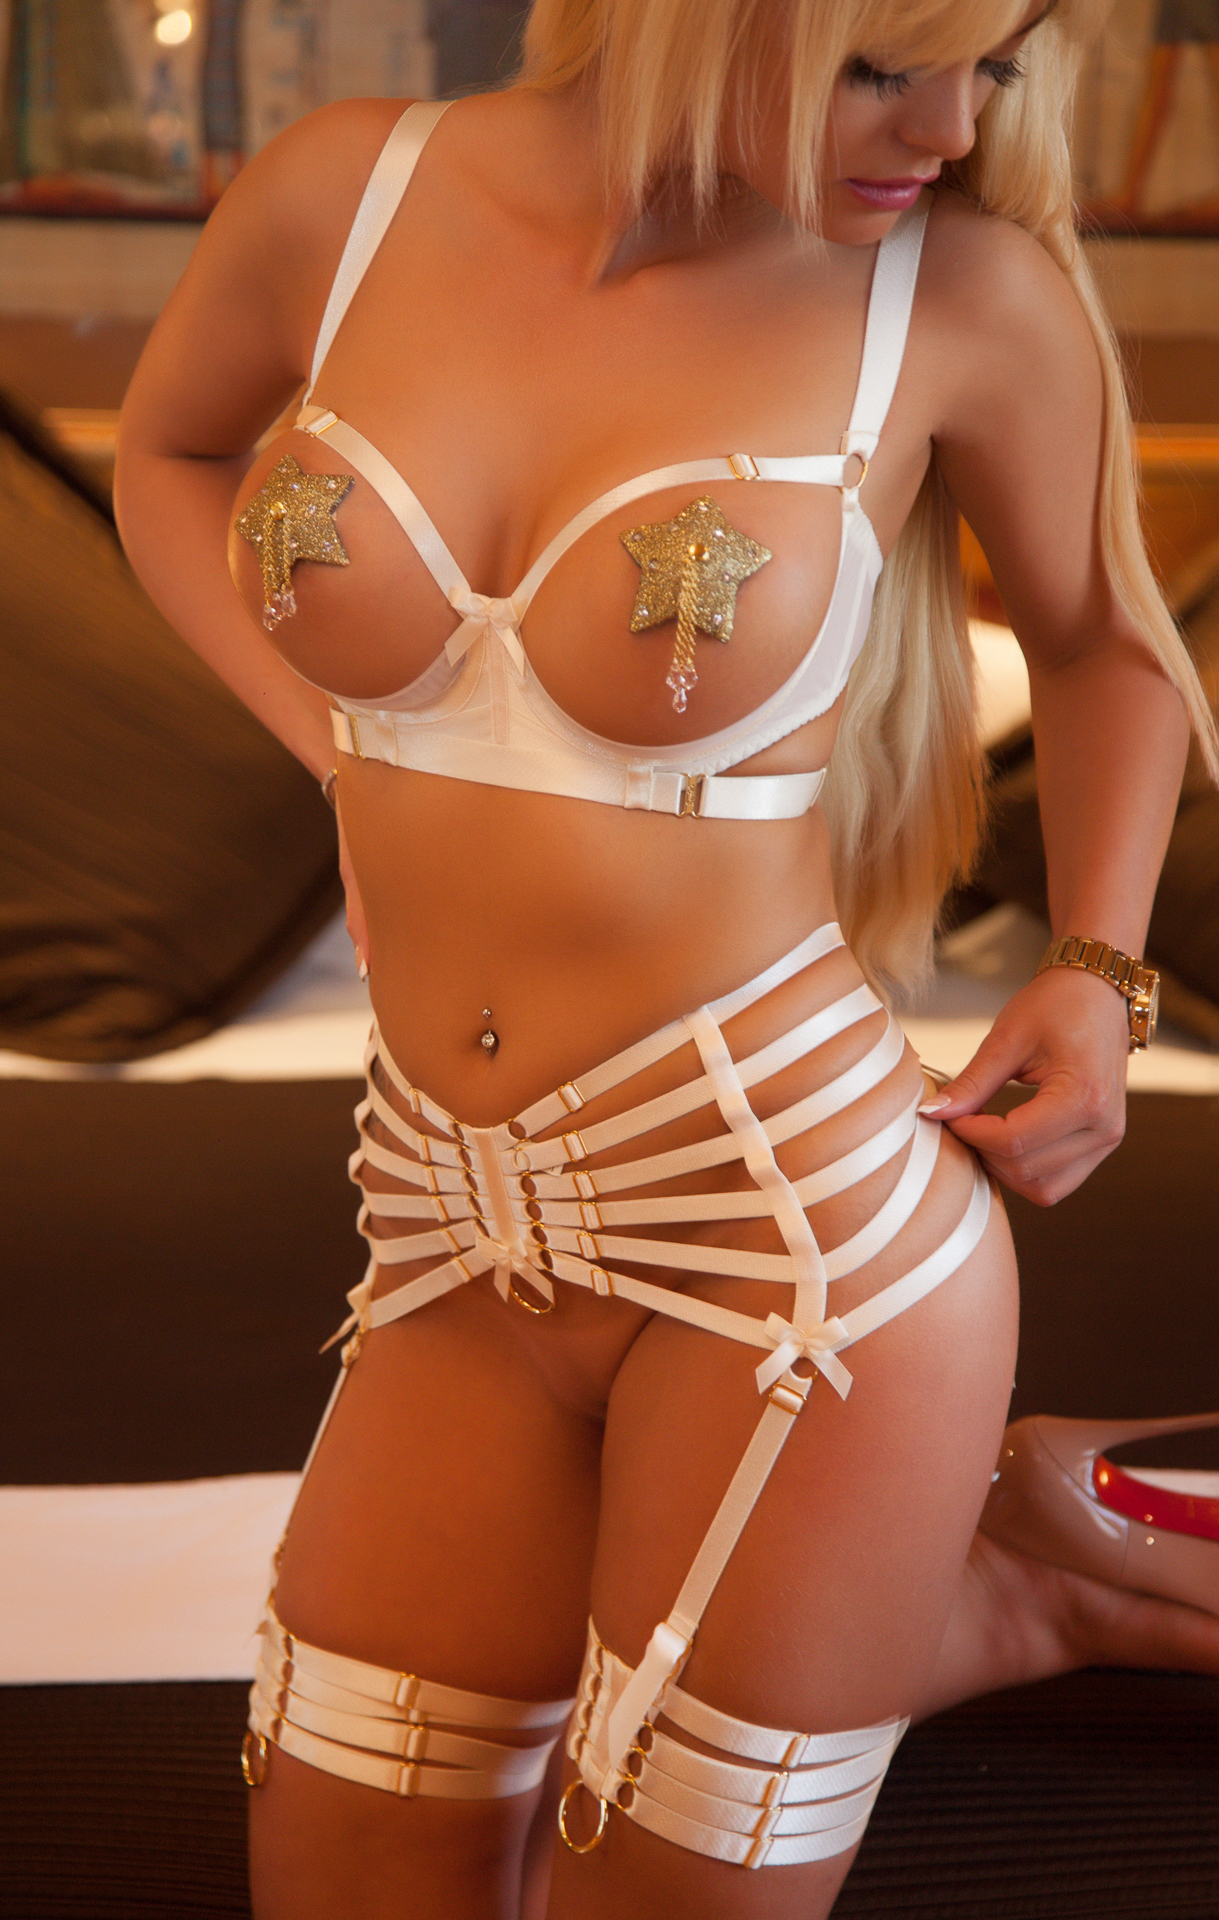 photo porno escort saint malo